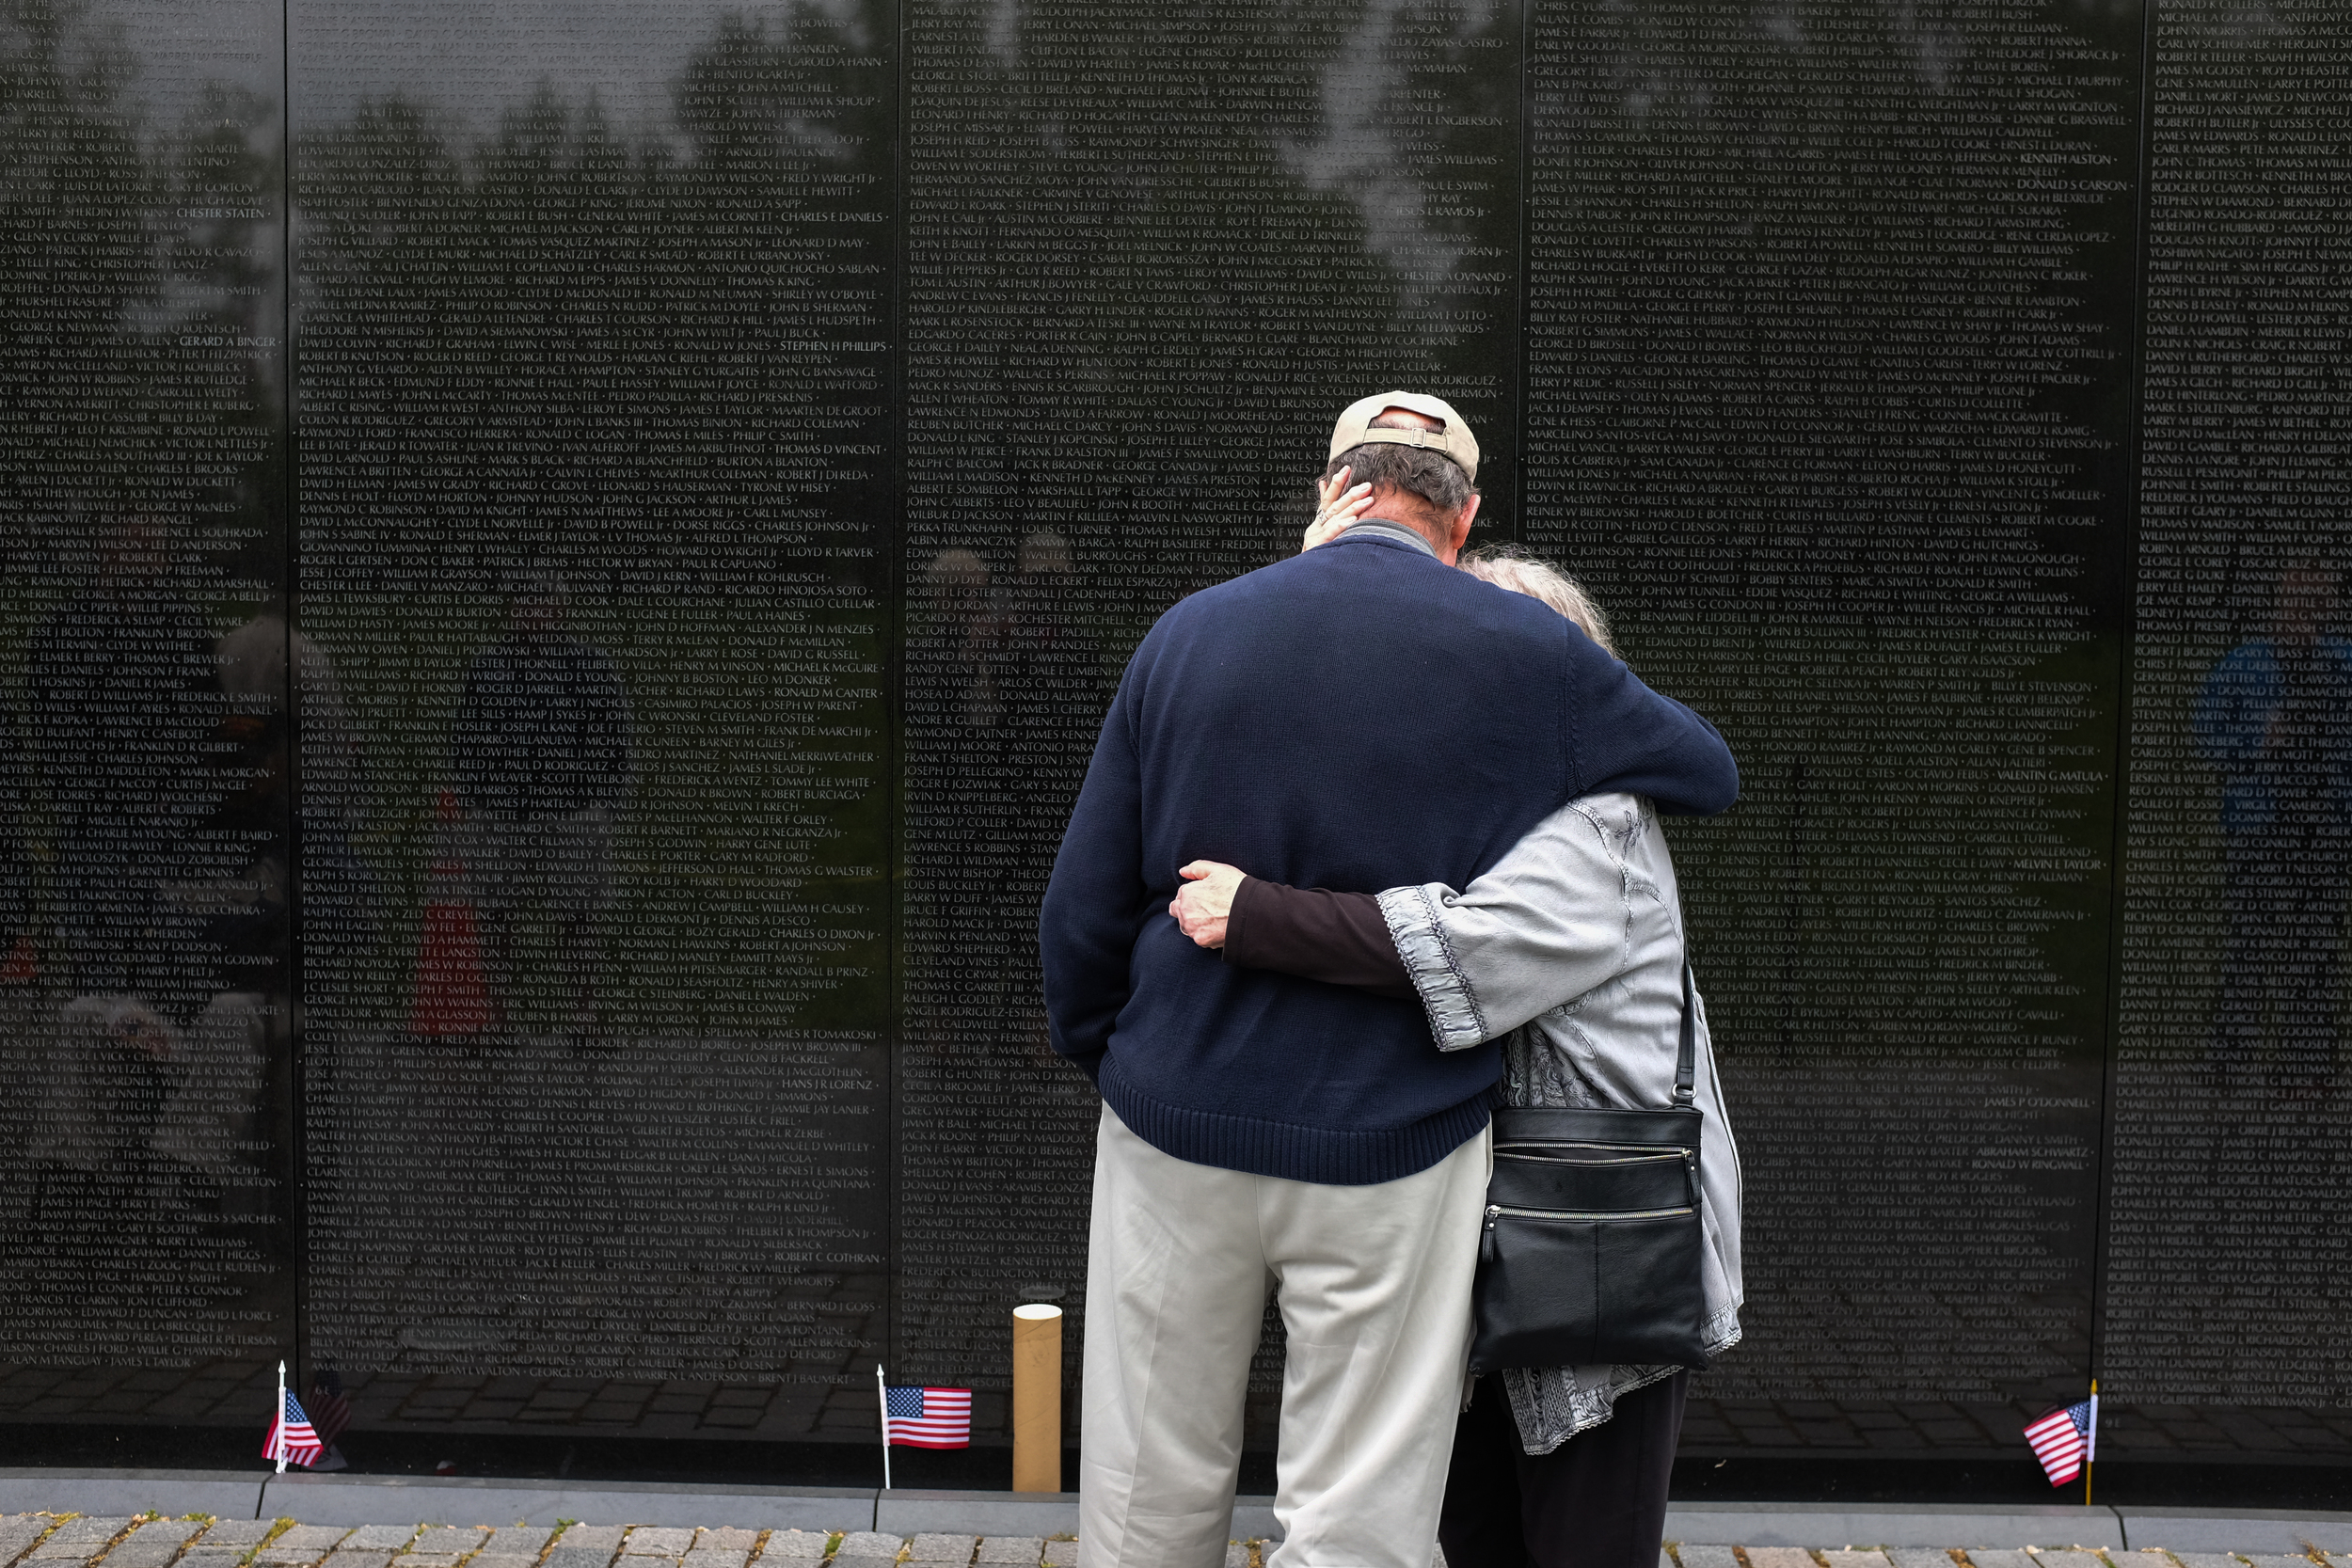 Mom and Dad reflect on their experience during the Vietnam War, and share their thoughts  after visiting the Vietnam Wall in DC in April 2016.